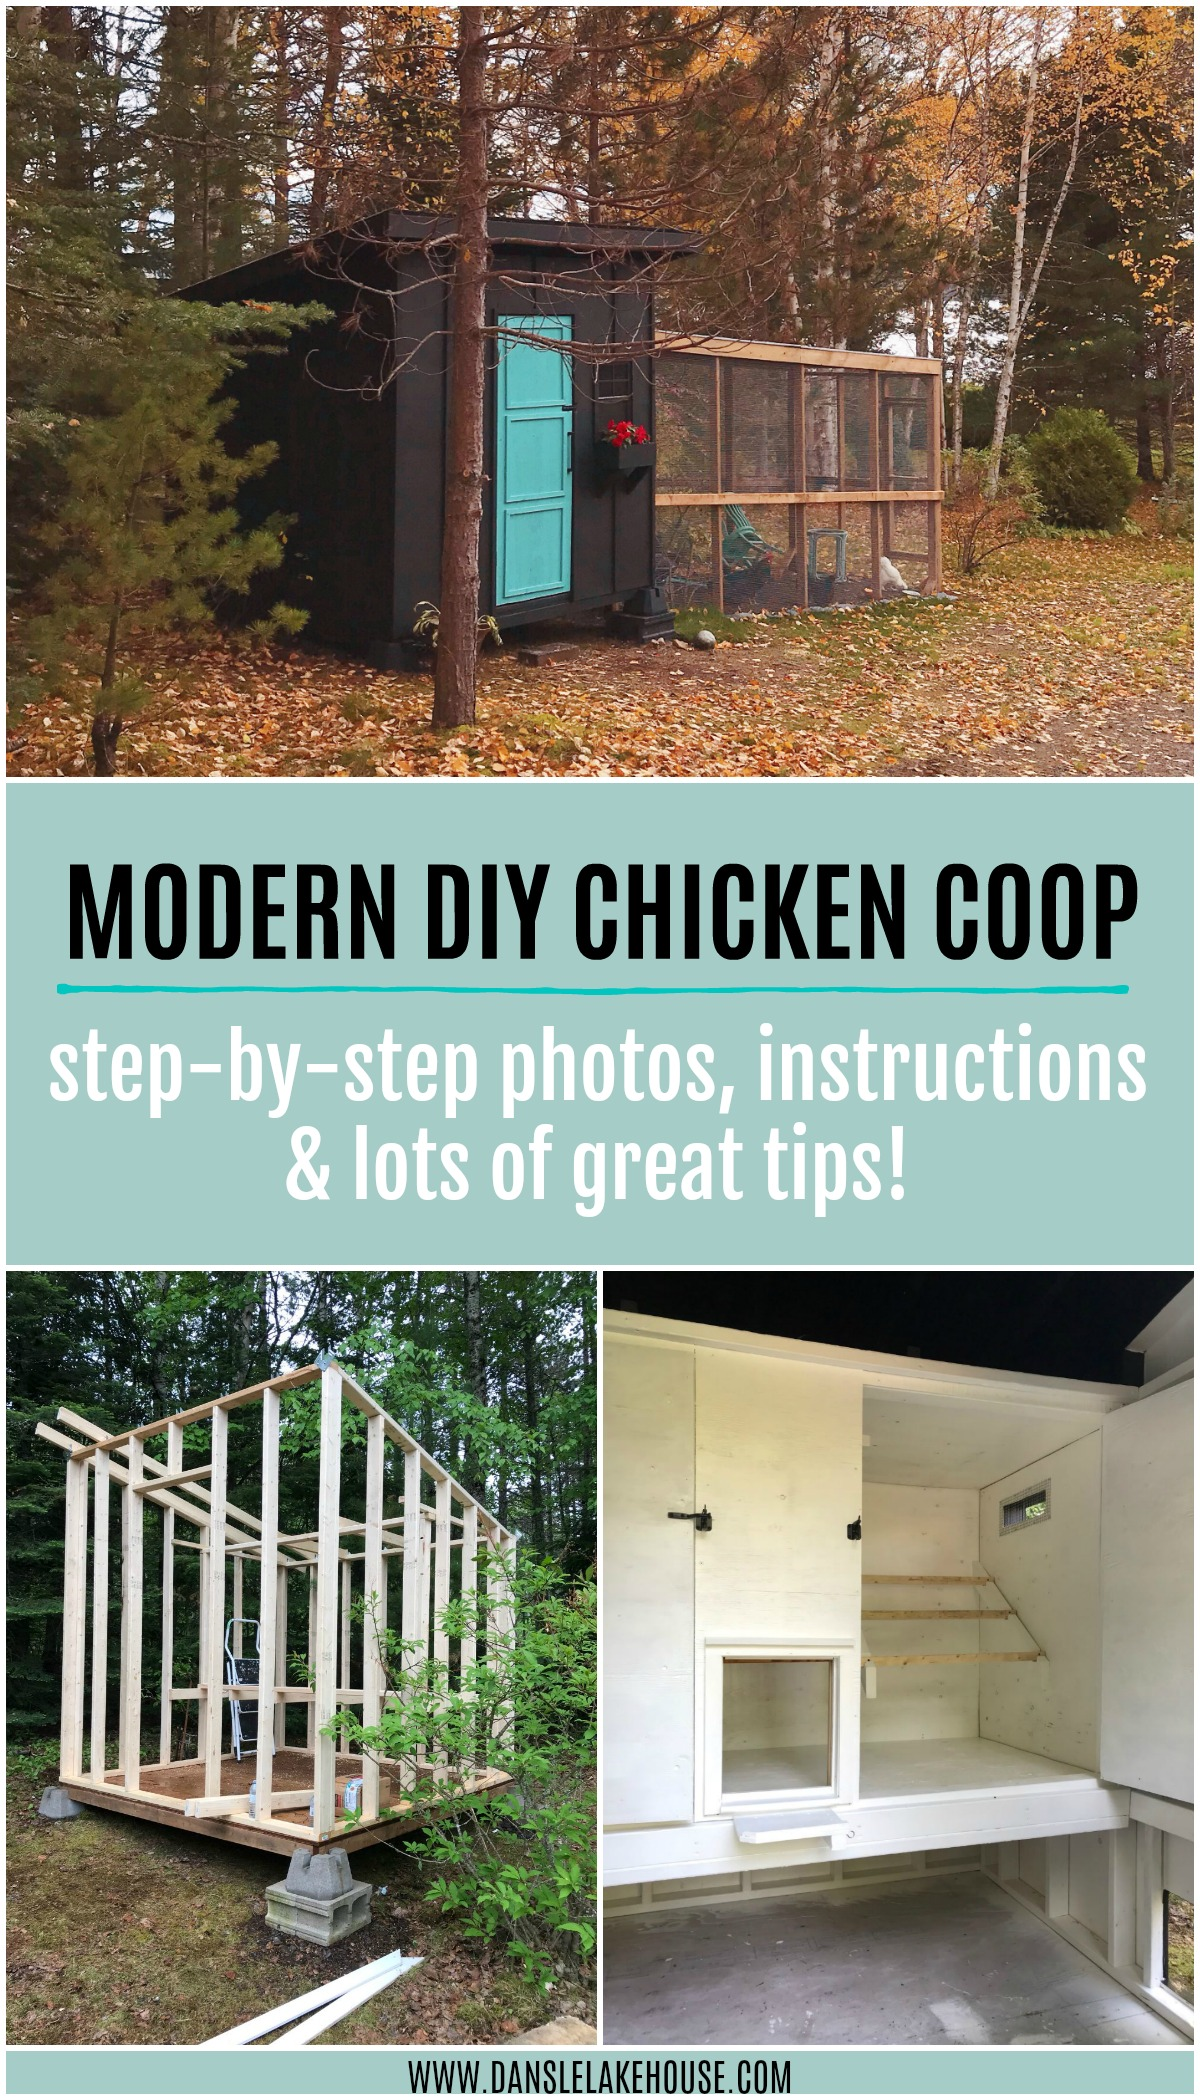 Learn How to Build this Modern DIY Chicken Coop